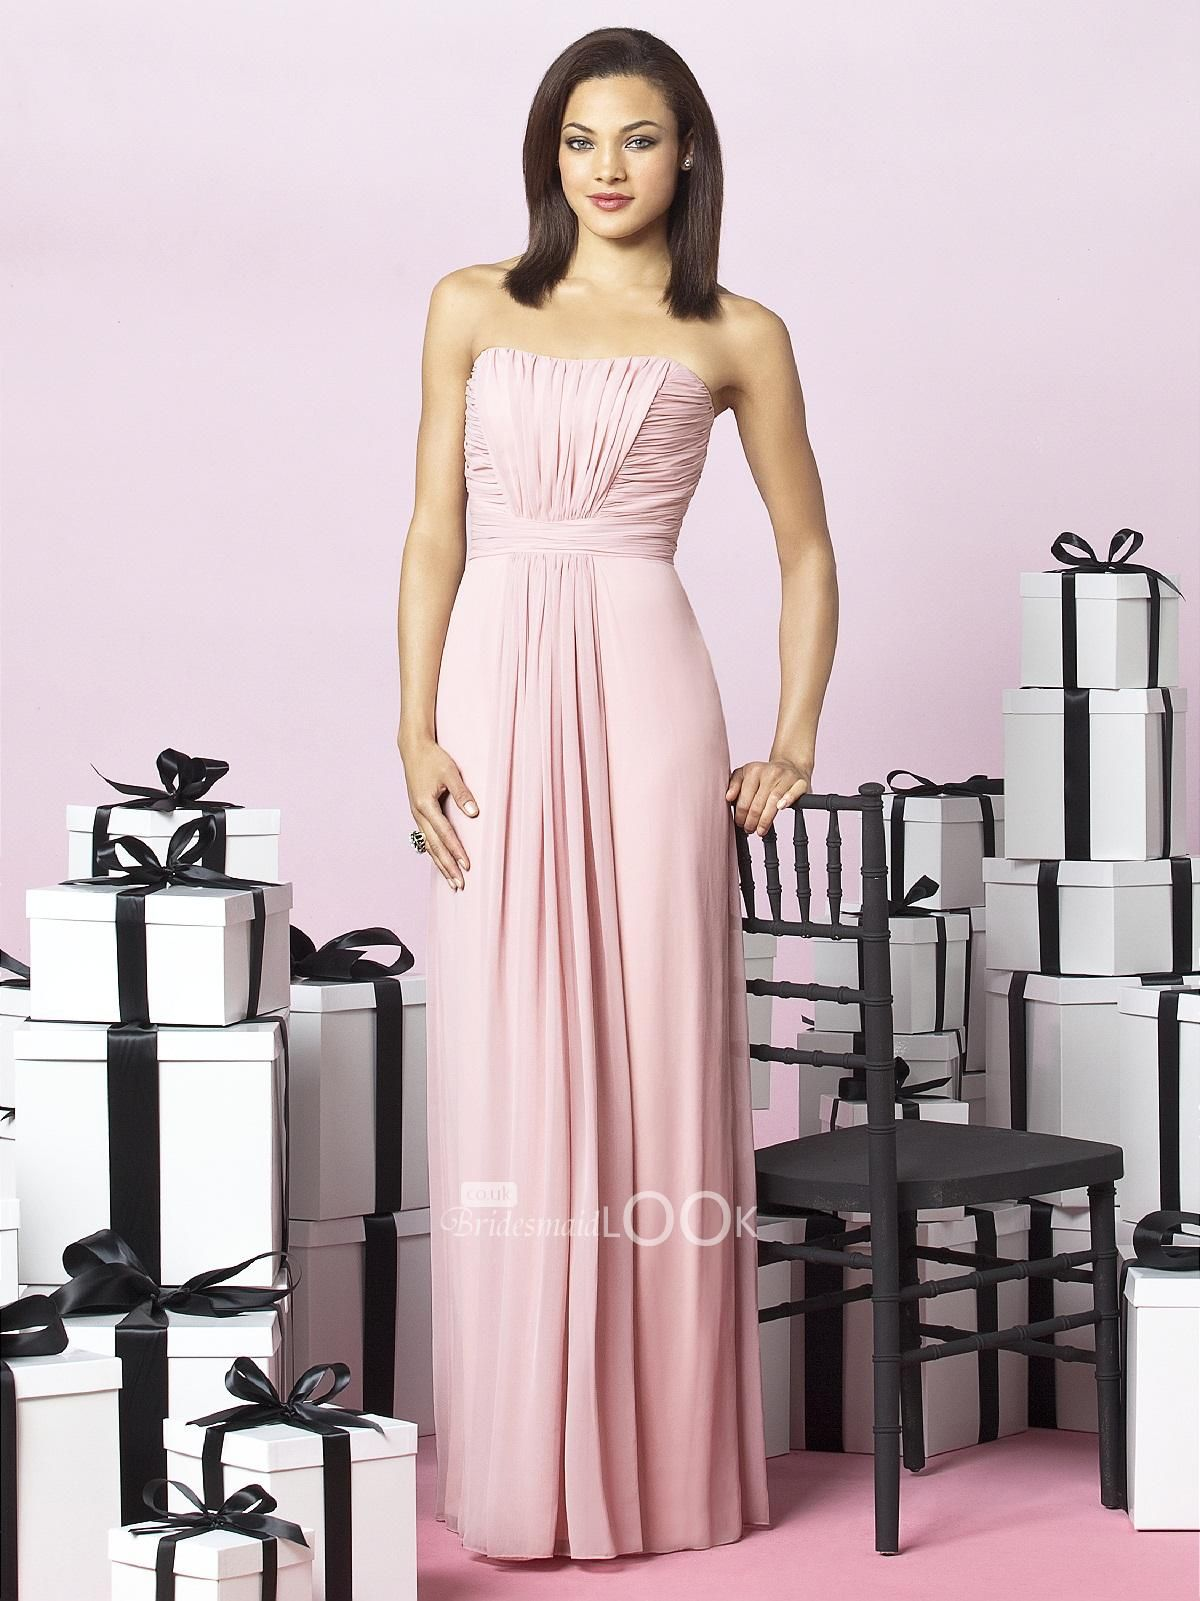 Pale pink bridesmaid dress pale pink bridesmaid dresses pale pink bridesmaid dress ombrellifo Image collections